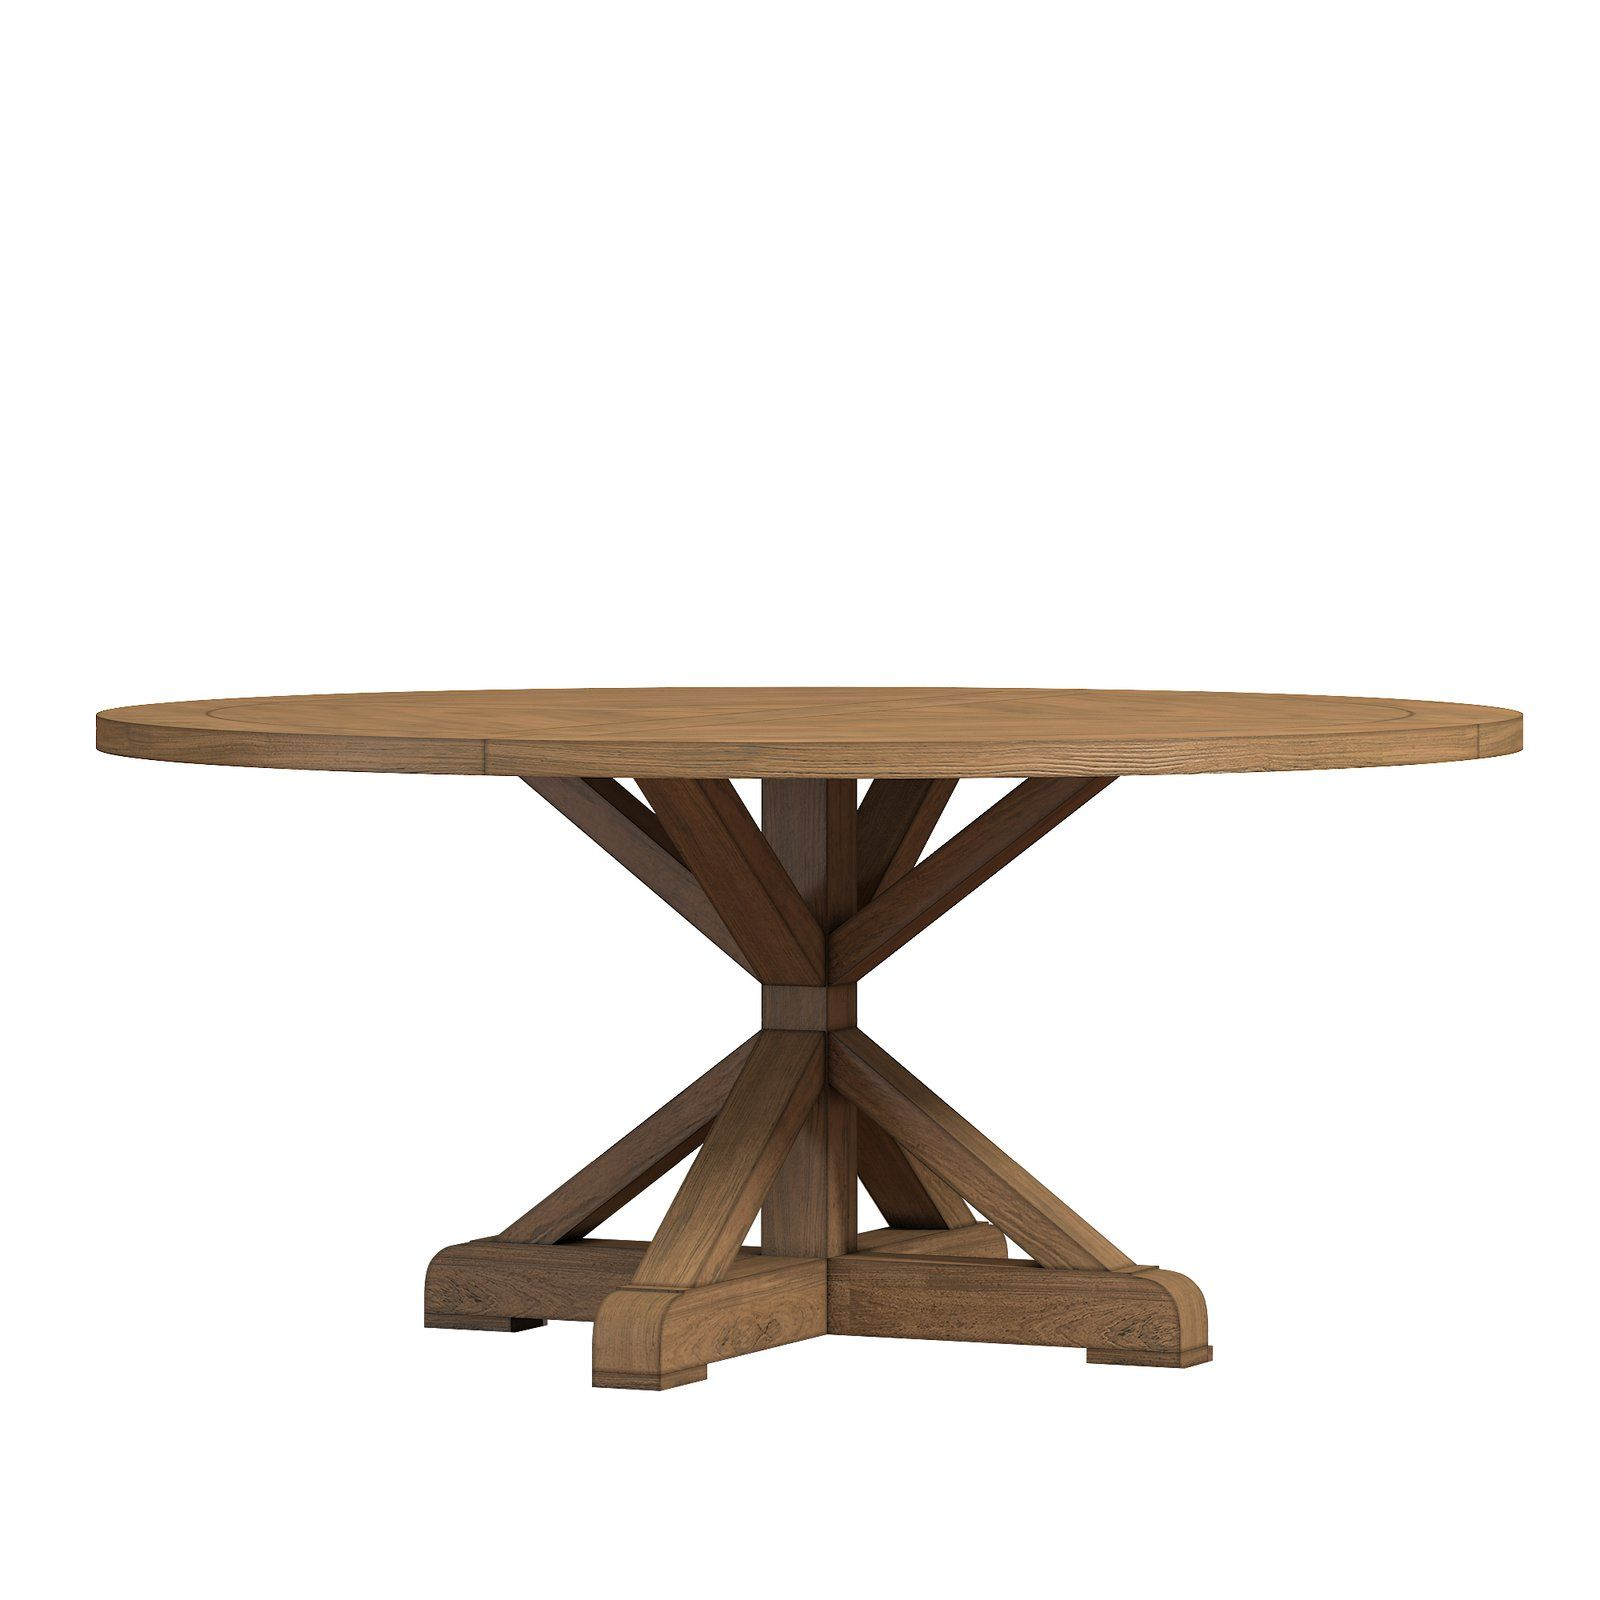 Peralta Round Rustic Dining Table Dining Table Rustic Solid Wood Dining Table Dining Table In Kitchen